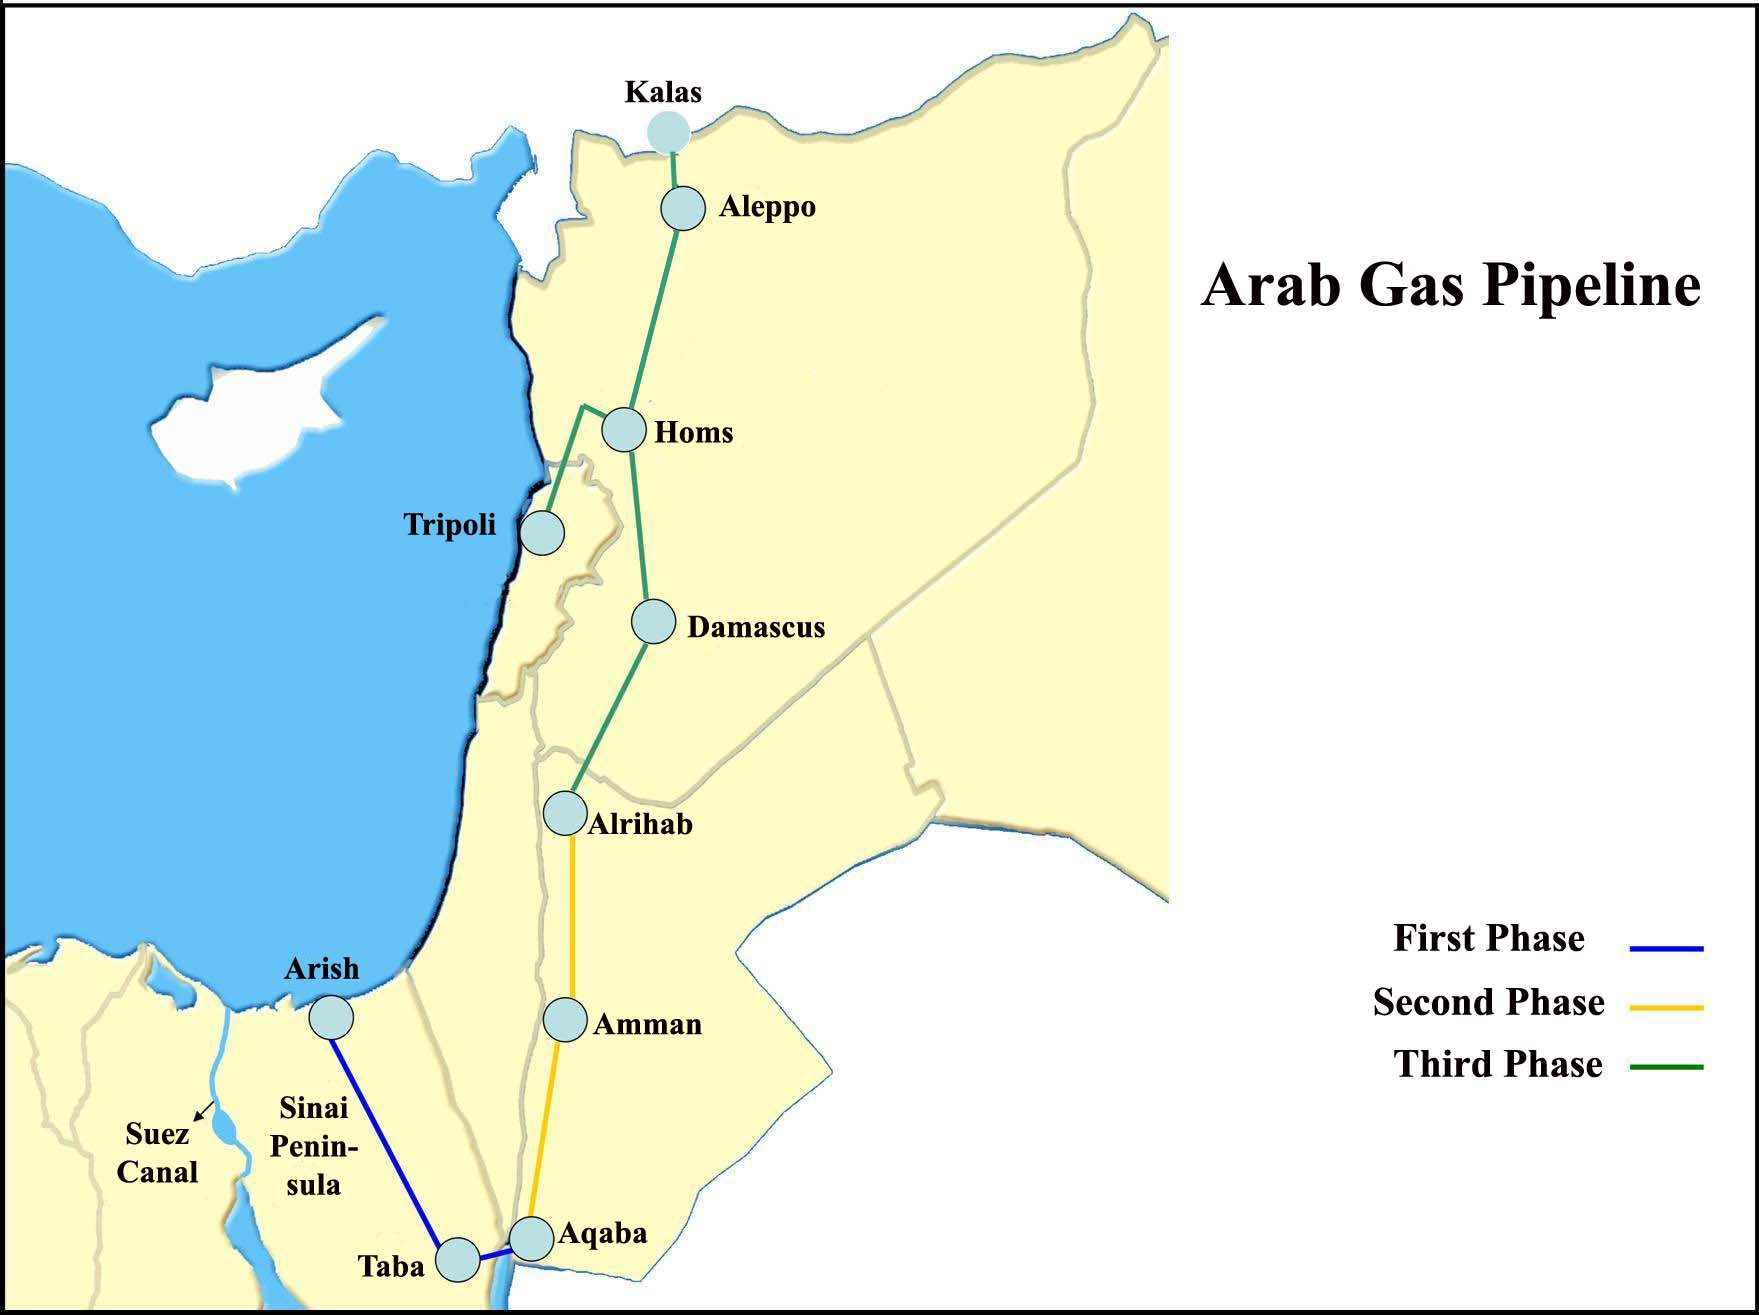 A picture named arabGasPipeline.jpg